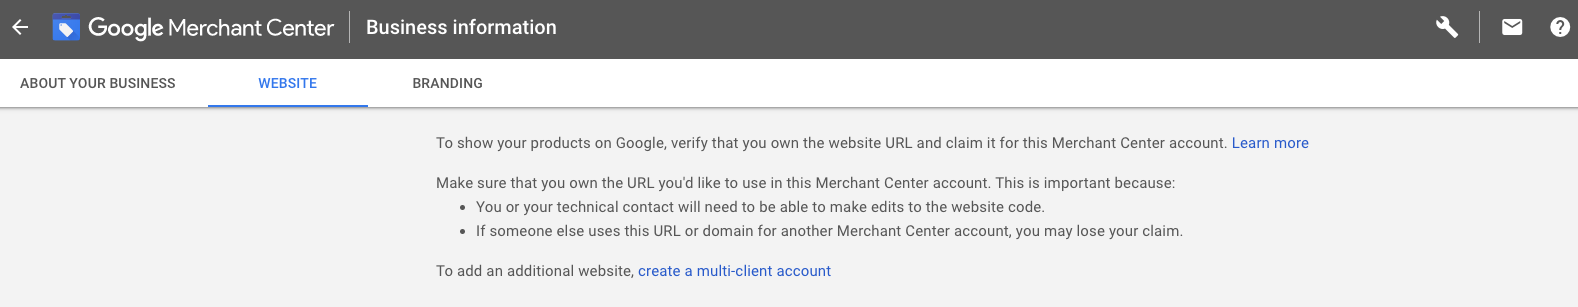 Google Merchant Center verification